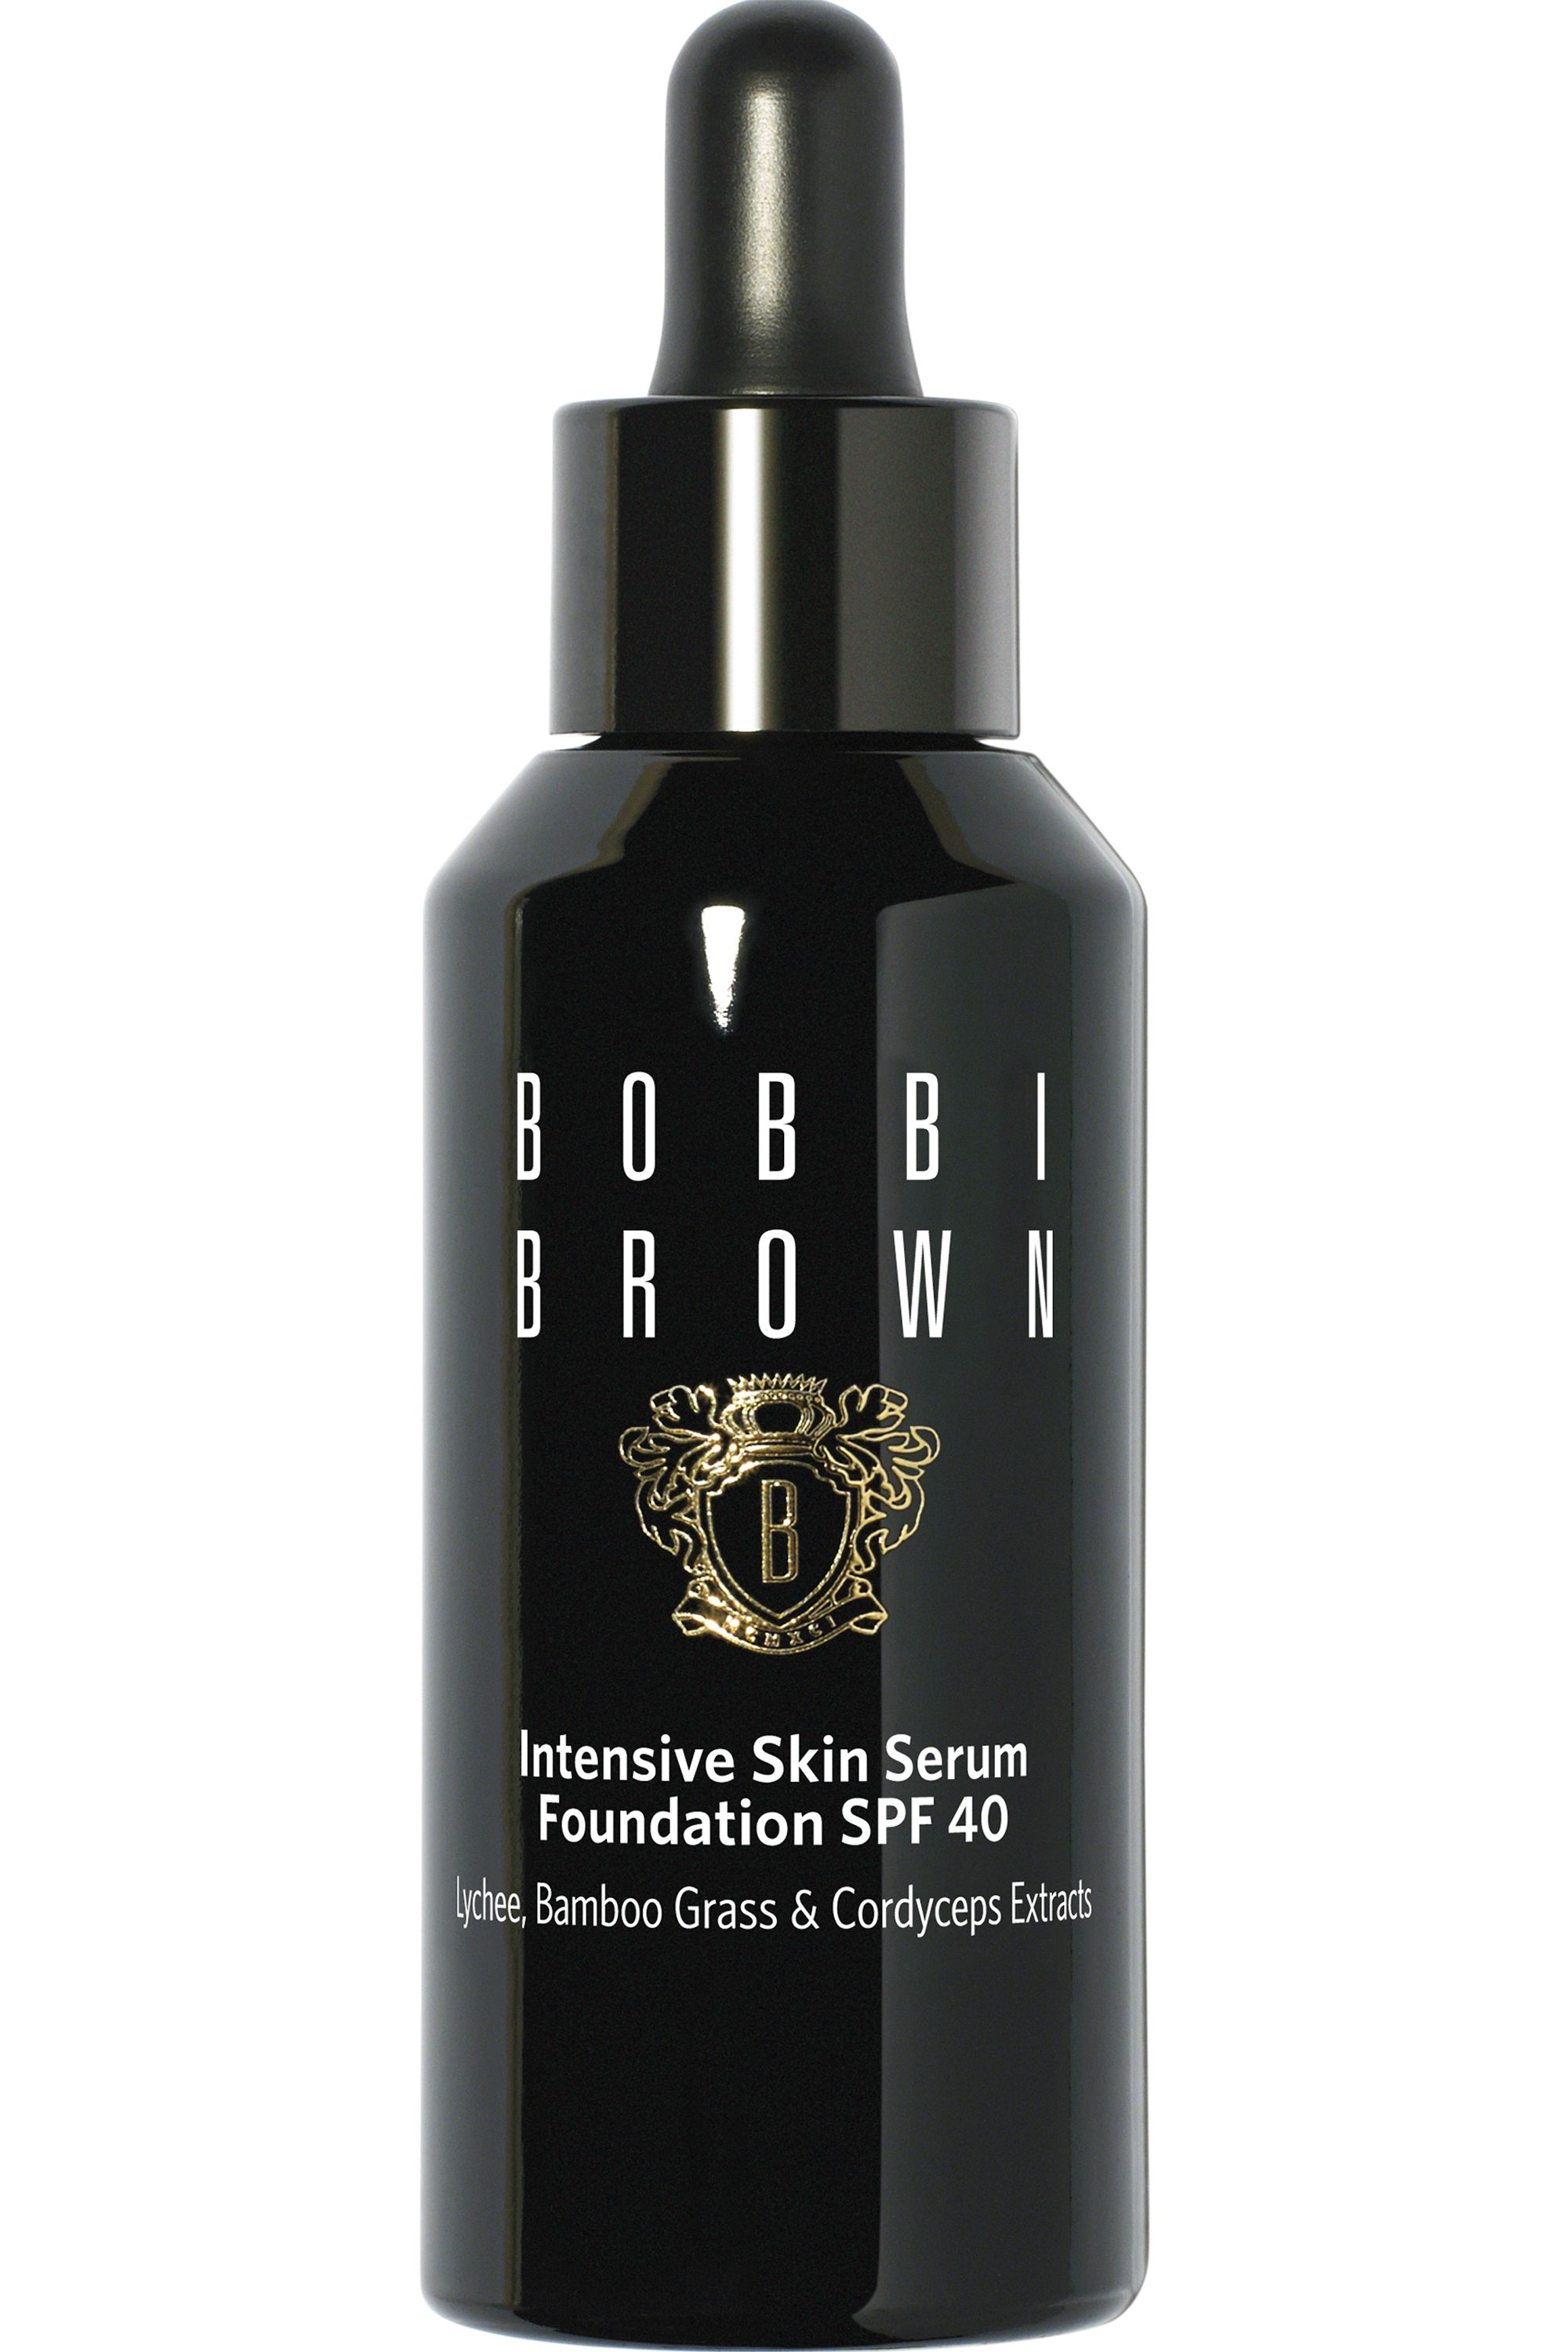 Blissim : Bobbi Brown - Fond de teint Intensive Skin Serum - Golden